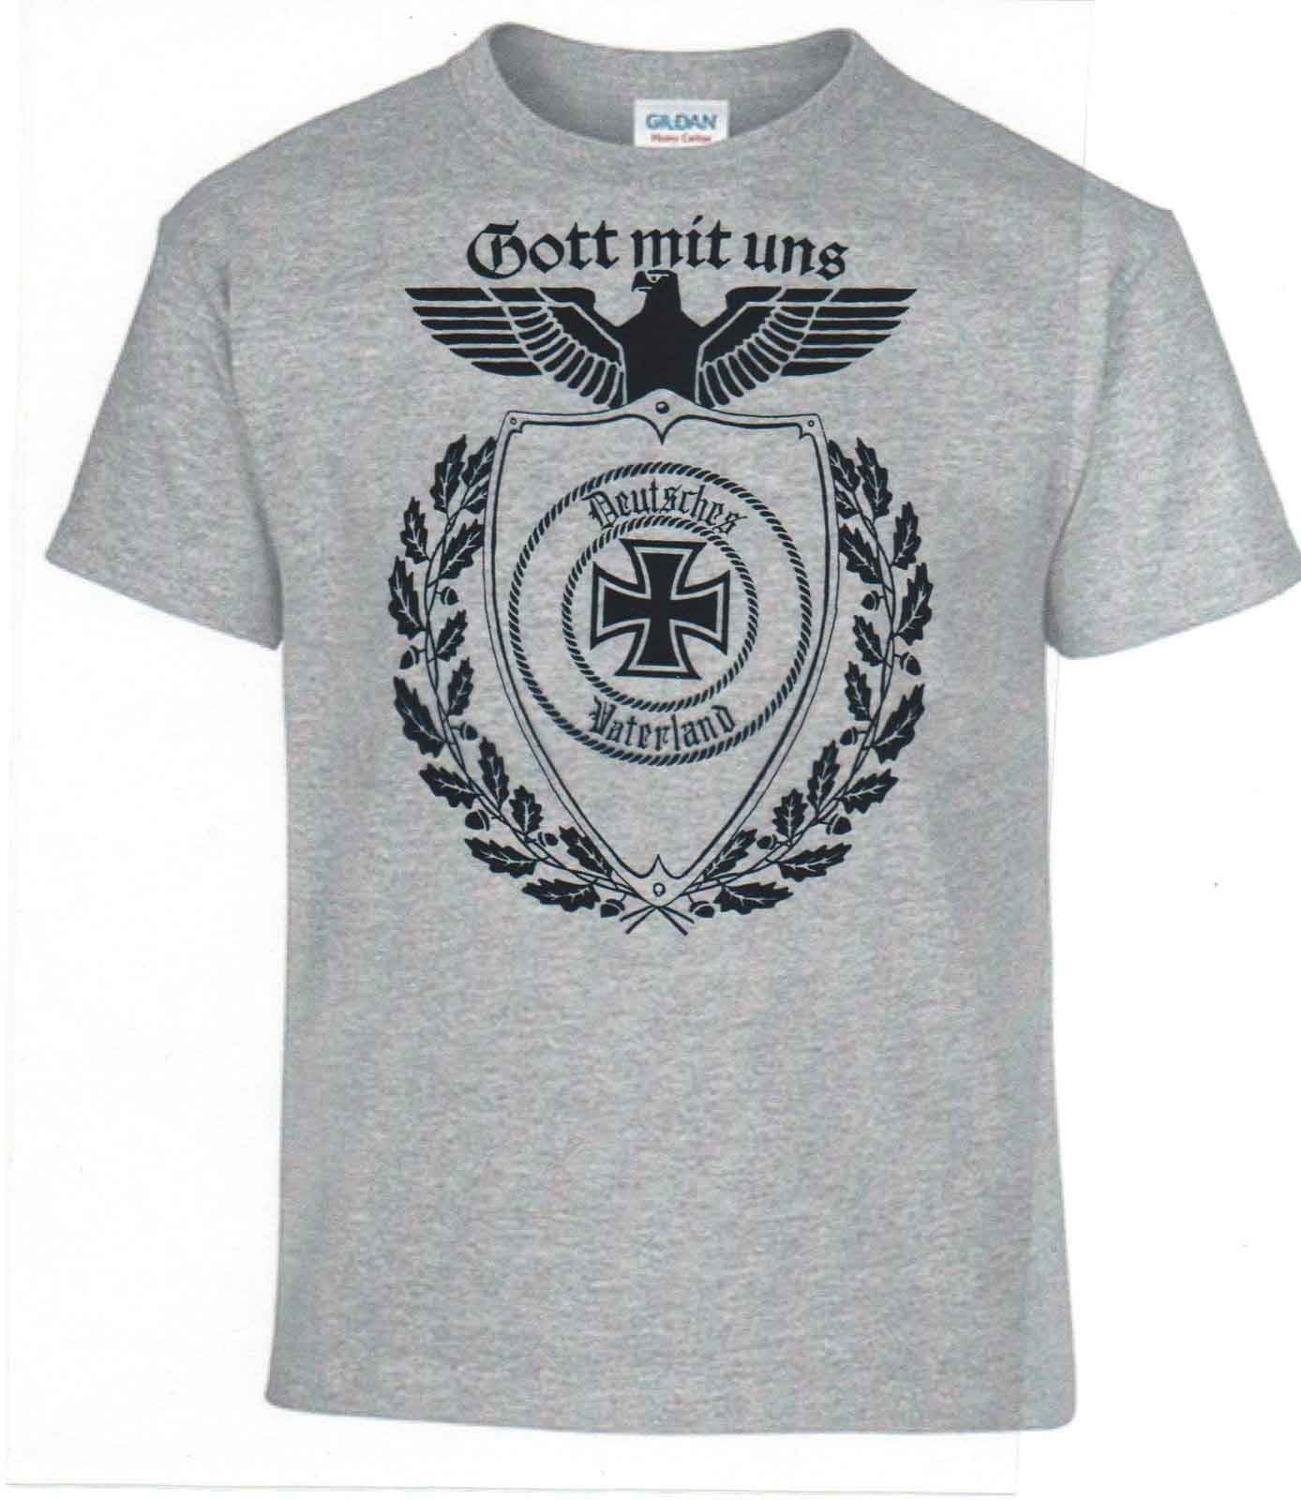 T Shirts Fashion 2019 T-Shirt, Germany, Iron Cross, God With Us, German Reich